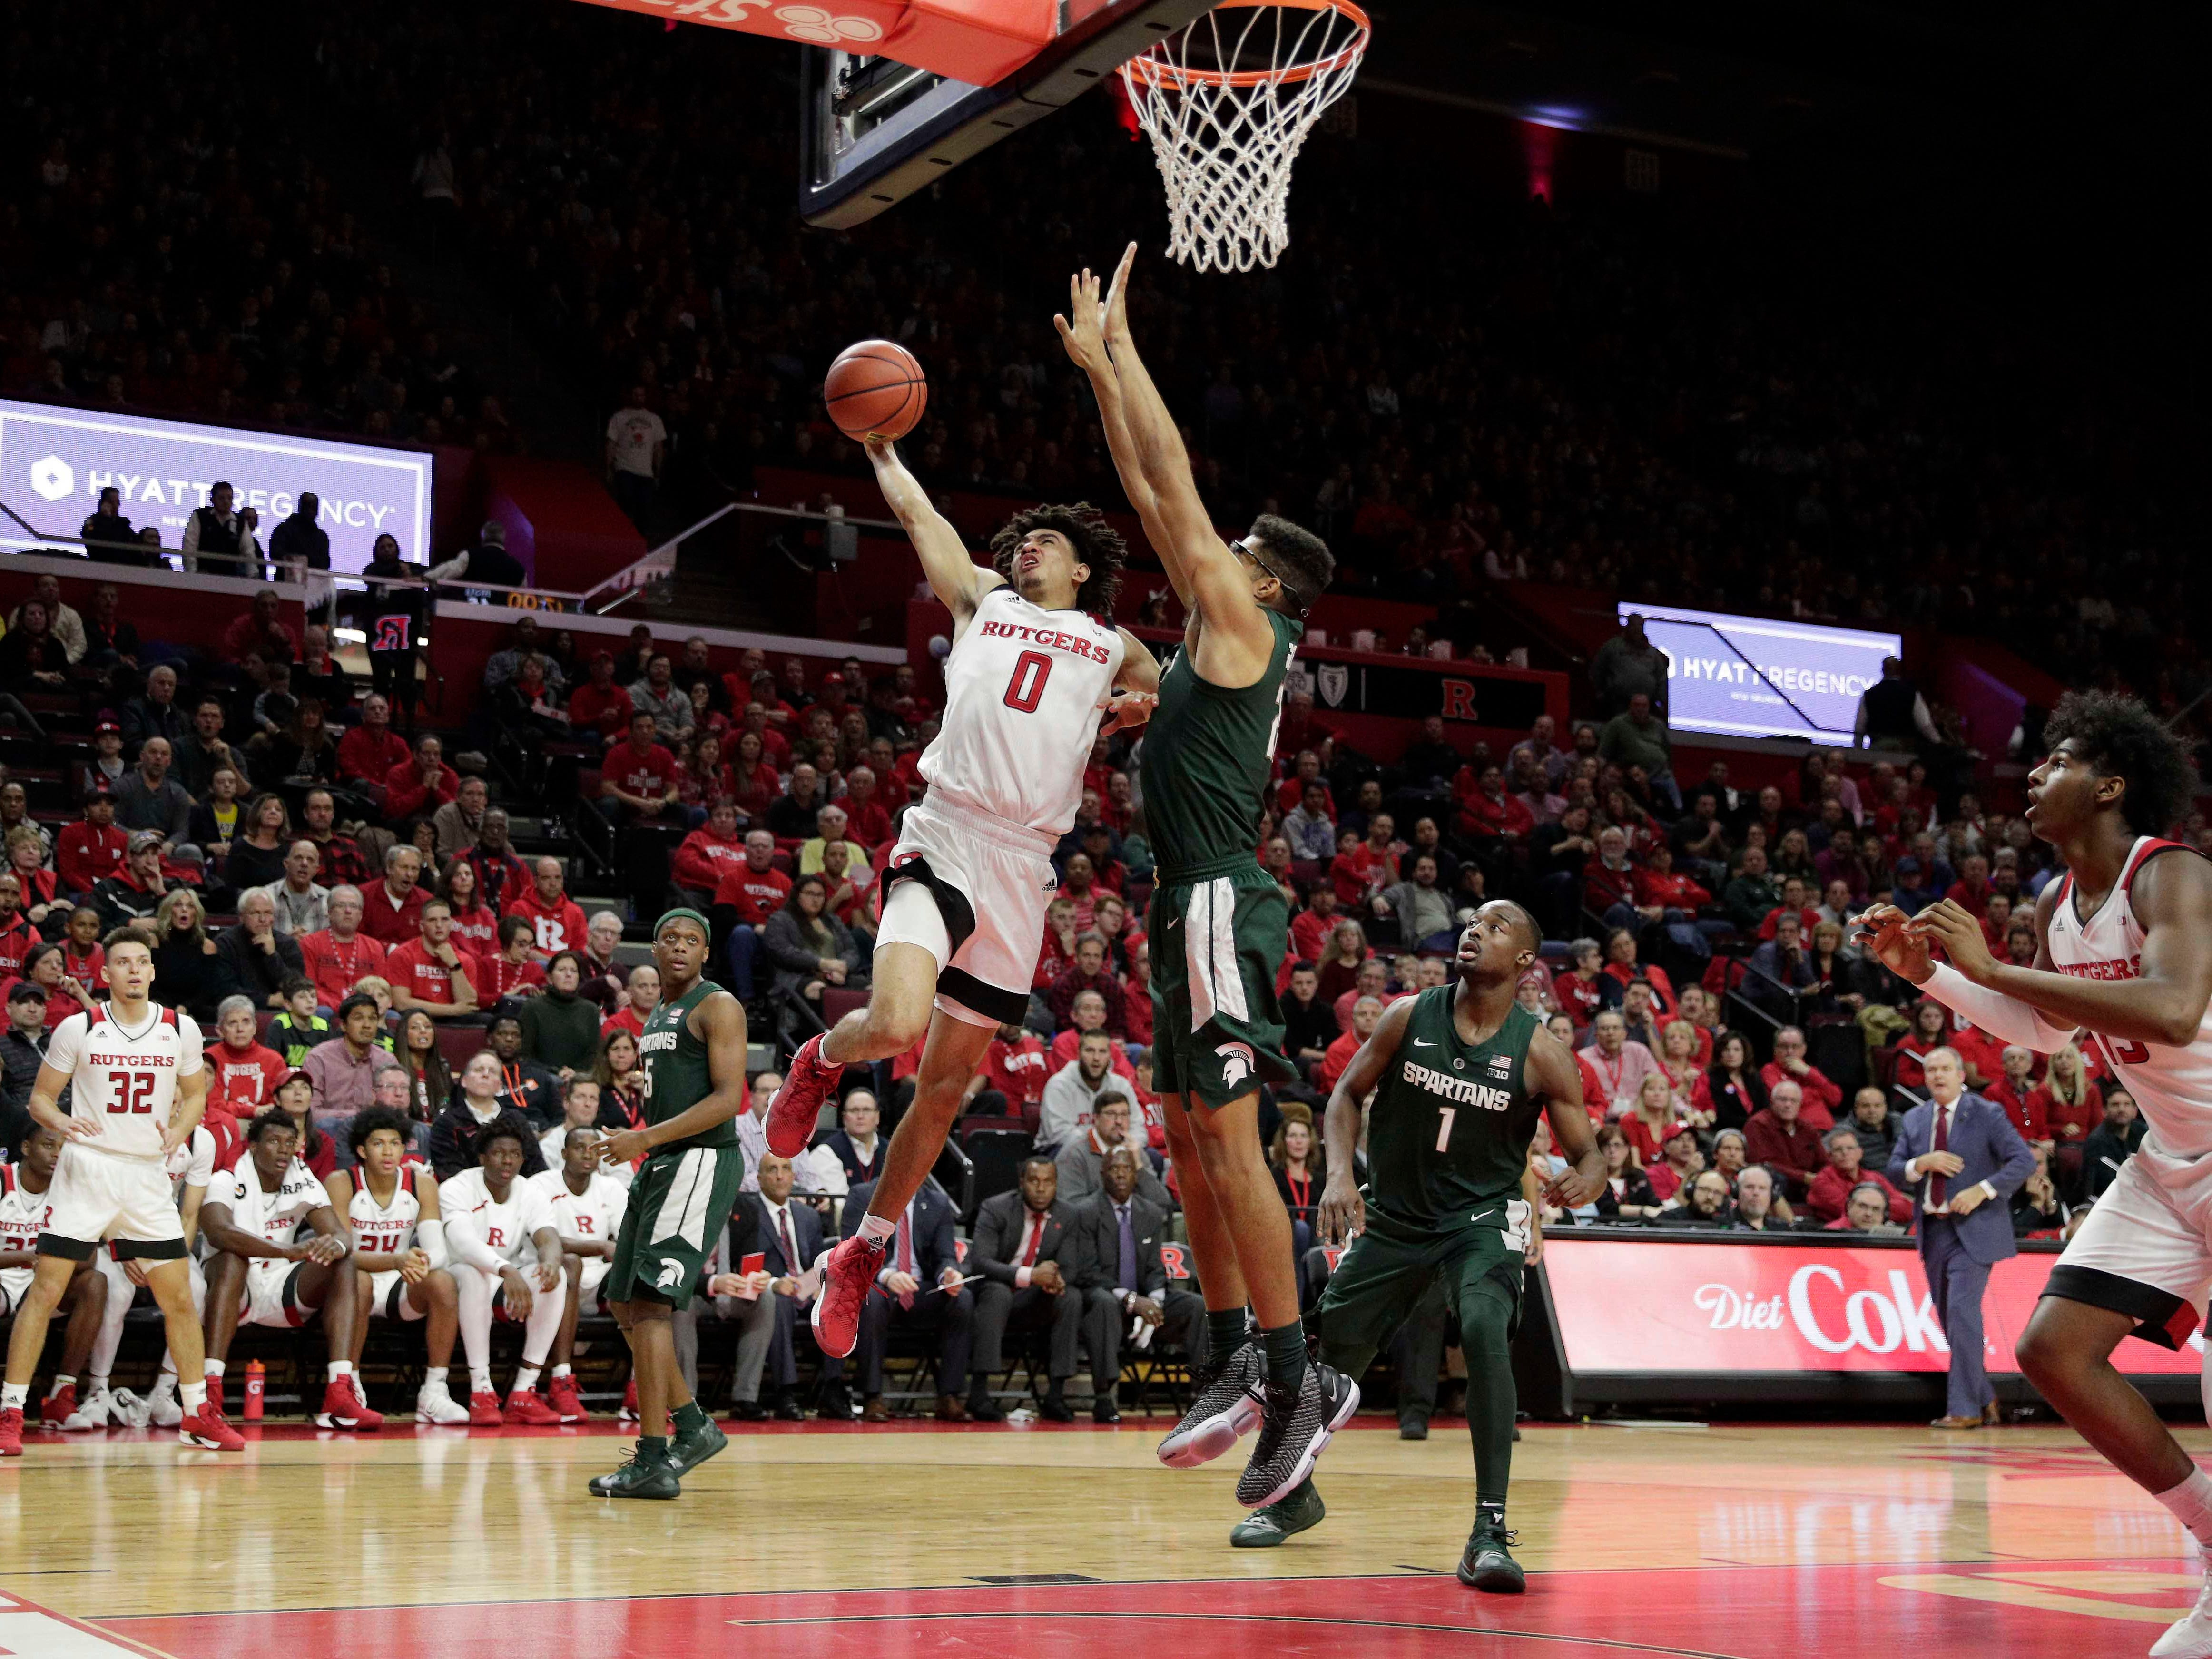 Rutgers Scarlet Knights guard Geo Baker (0) drives to the basket as Michigan State Spartans guard Matt McQuaid (20) defends during the second half at Rutgers Athletic Center (RAC).